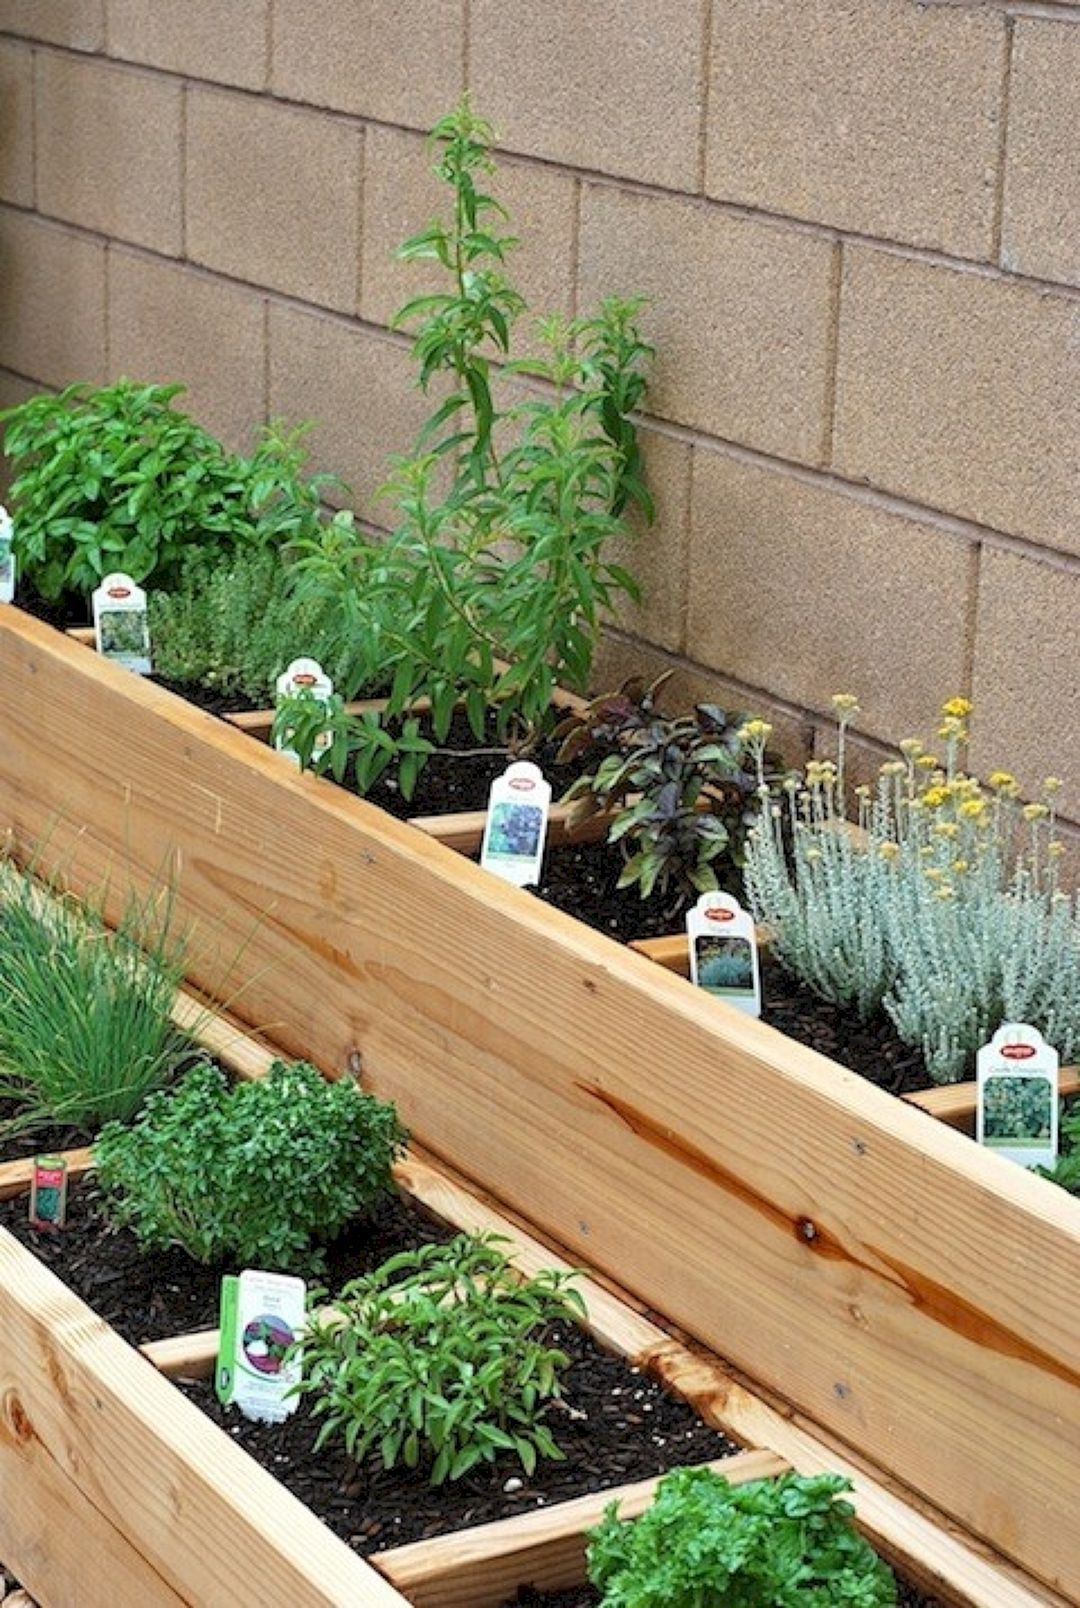 The Best Diy Small Patio Ideas On A Budget No 45 Goodsgn Raised Bed Herb Garden Small Backyard Gardens Small Backyard Landscaping